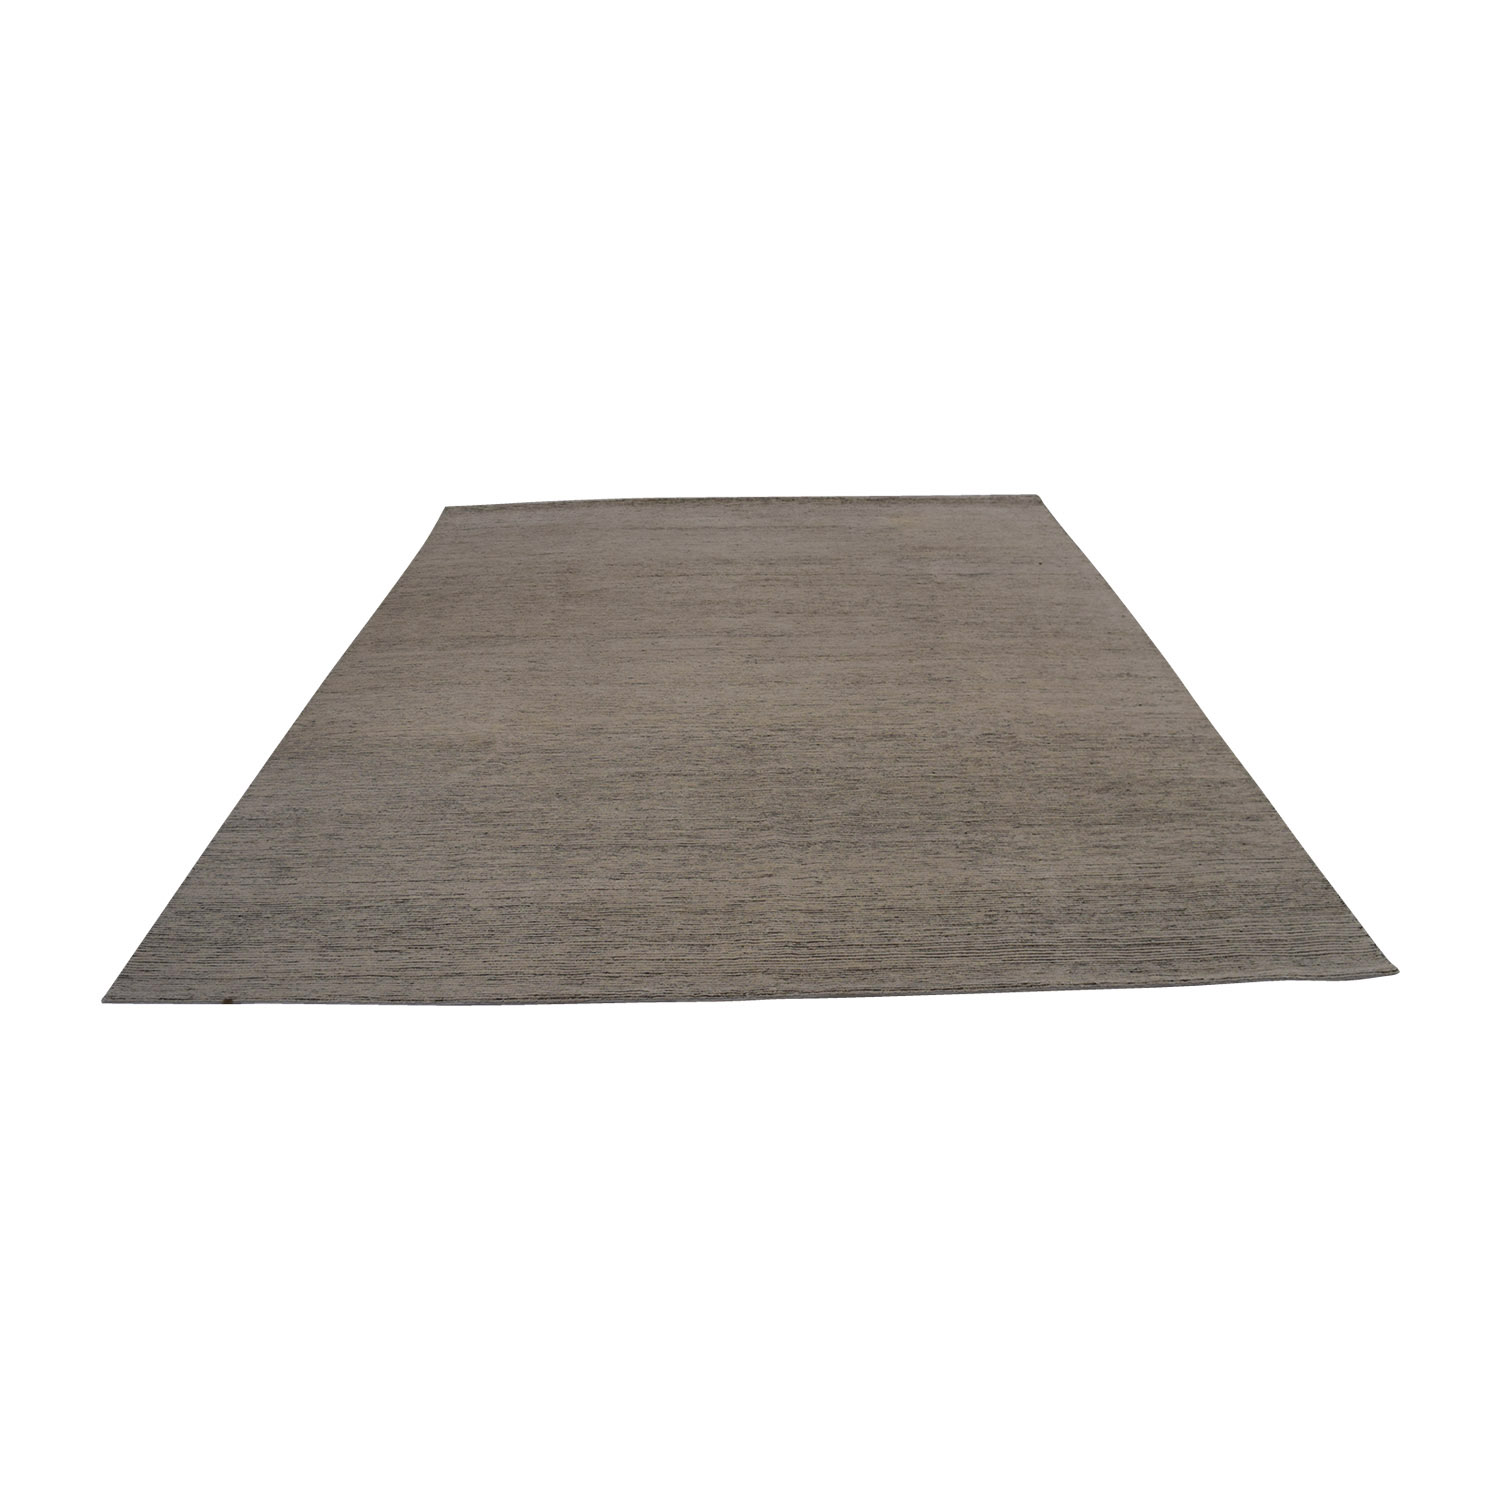 buy Room & Board Talia Oatmeal Rug Room & Board Decor